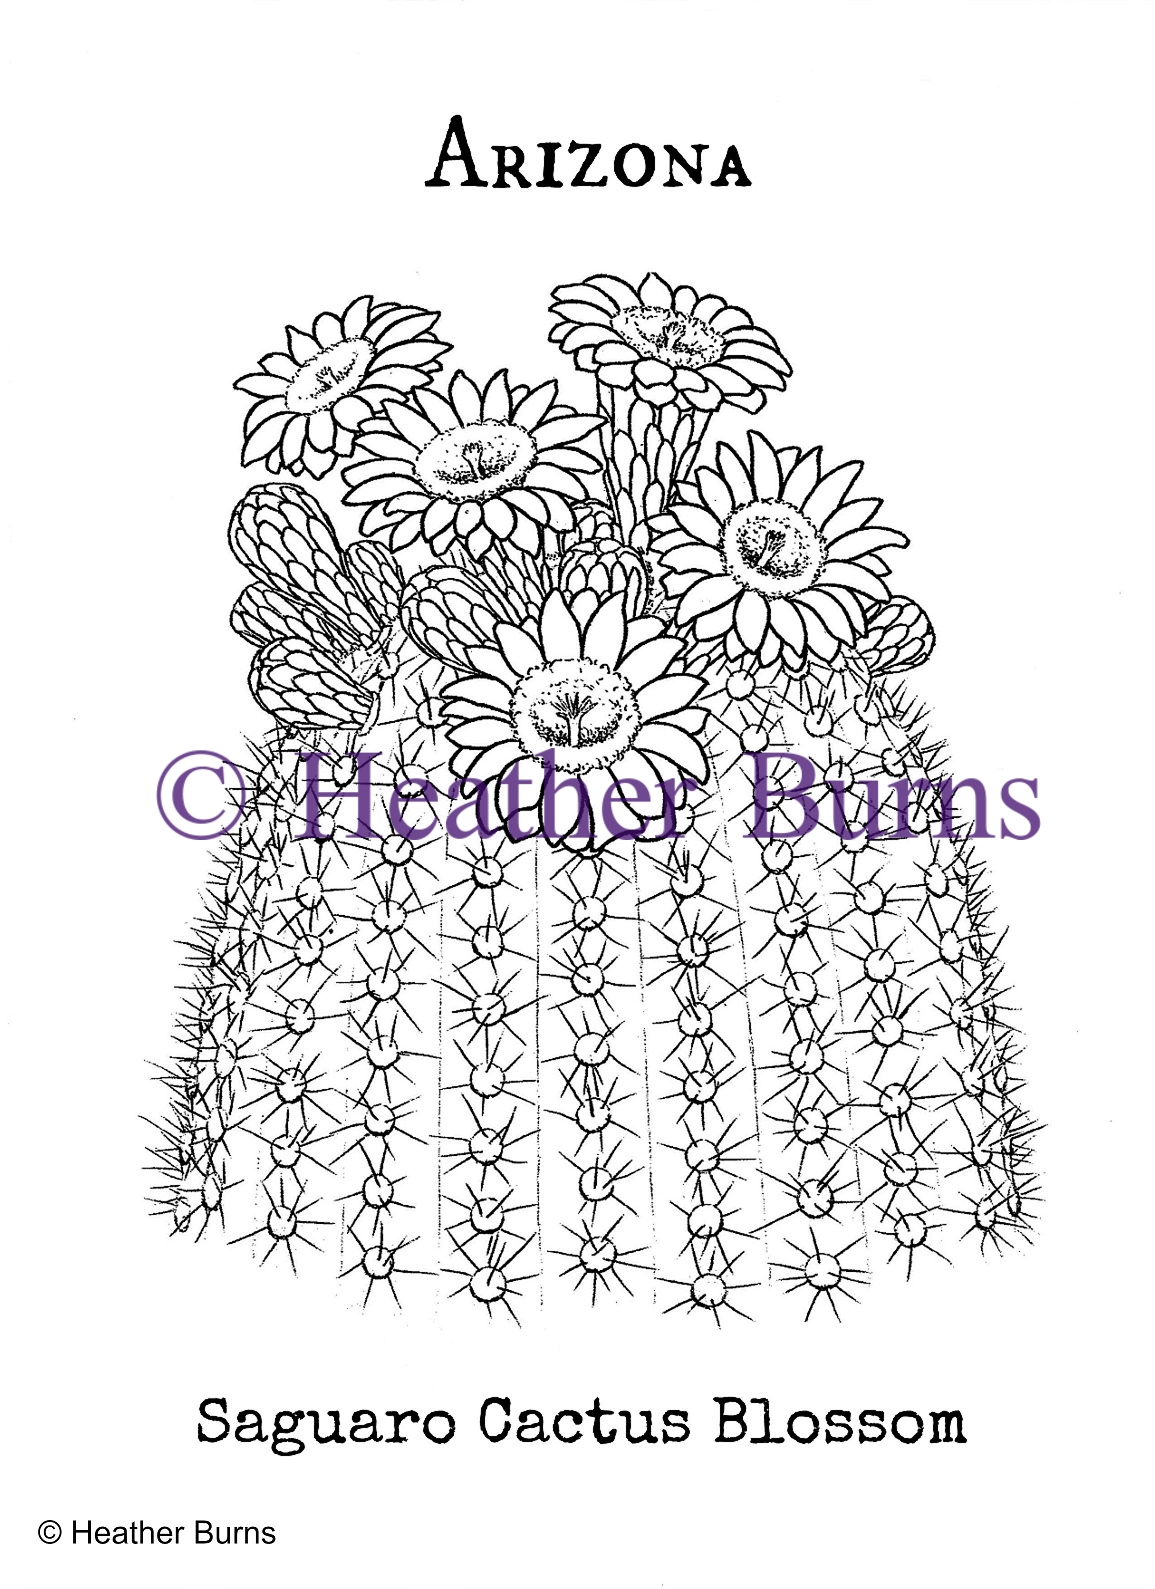 State Flower Coloring Book Arizona Saguaro Cactus Blossom Coloring Page